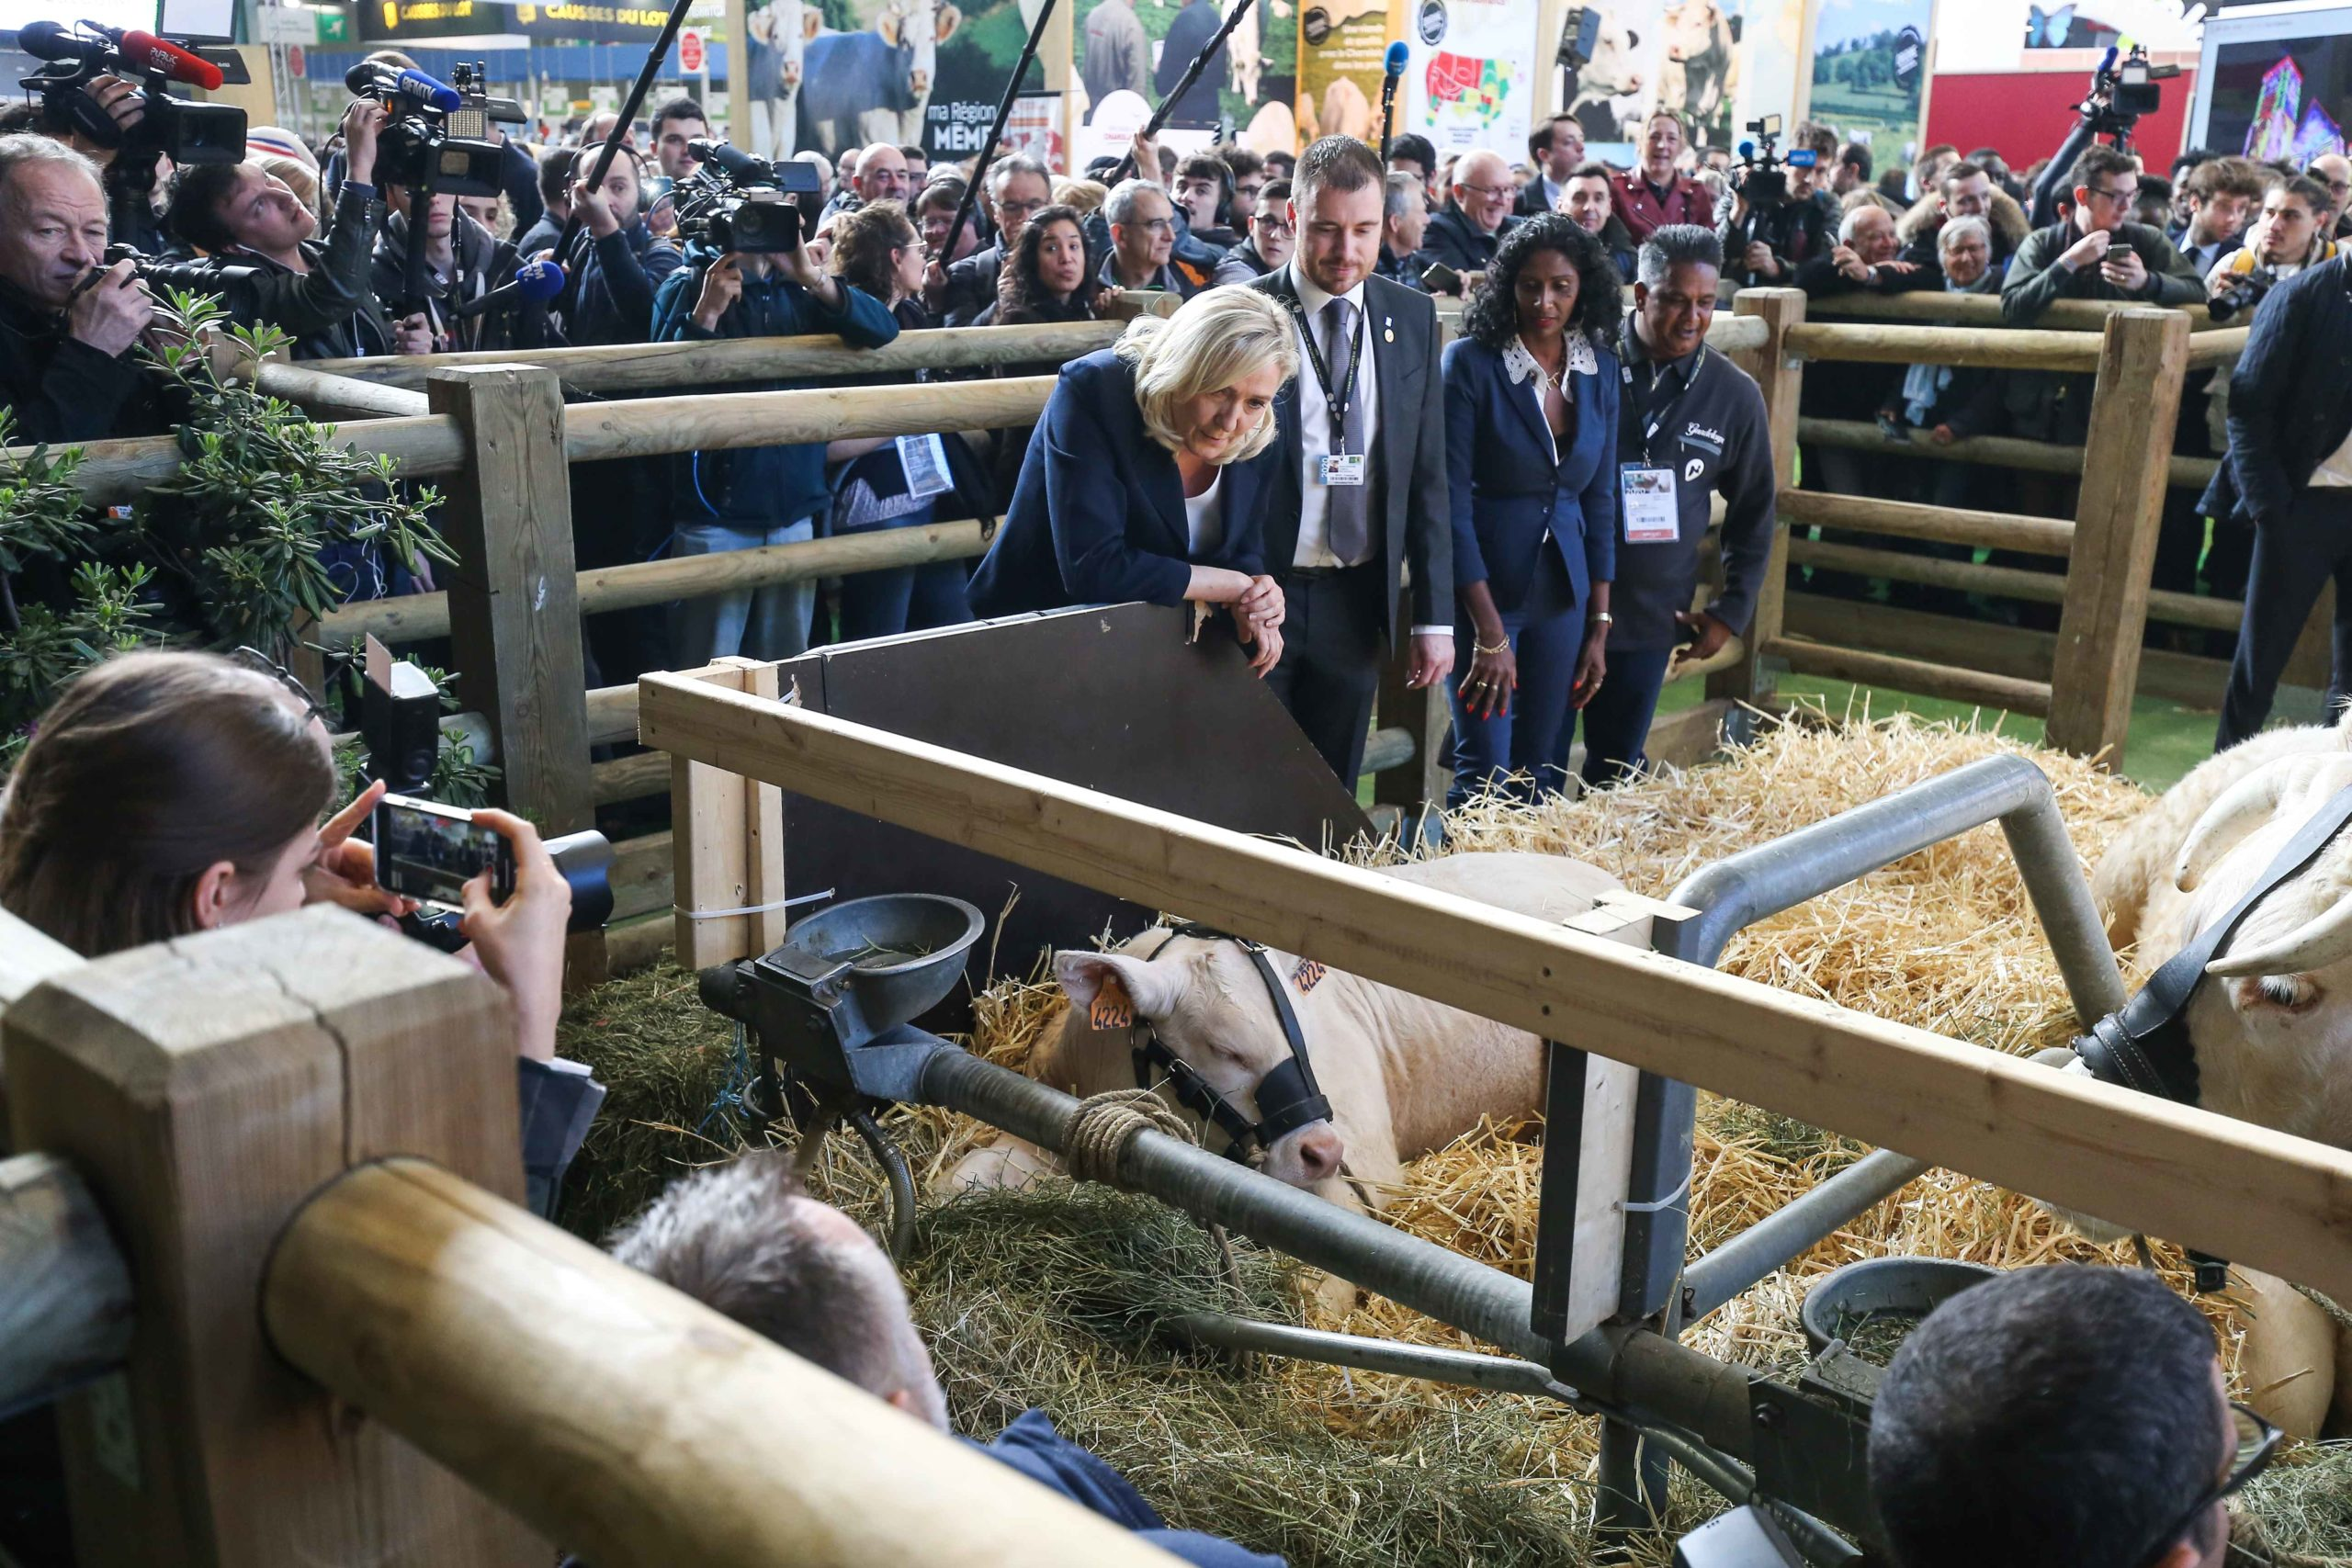 Marine Le Pen visite le Salon international de l'agriculture. © Michel Stoupak. Mar 25.02.2020, 10:07:42.